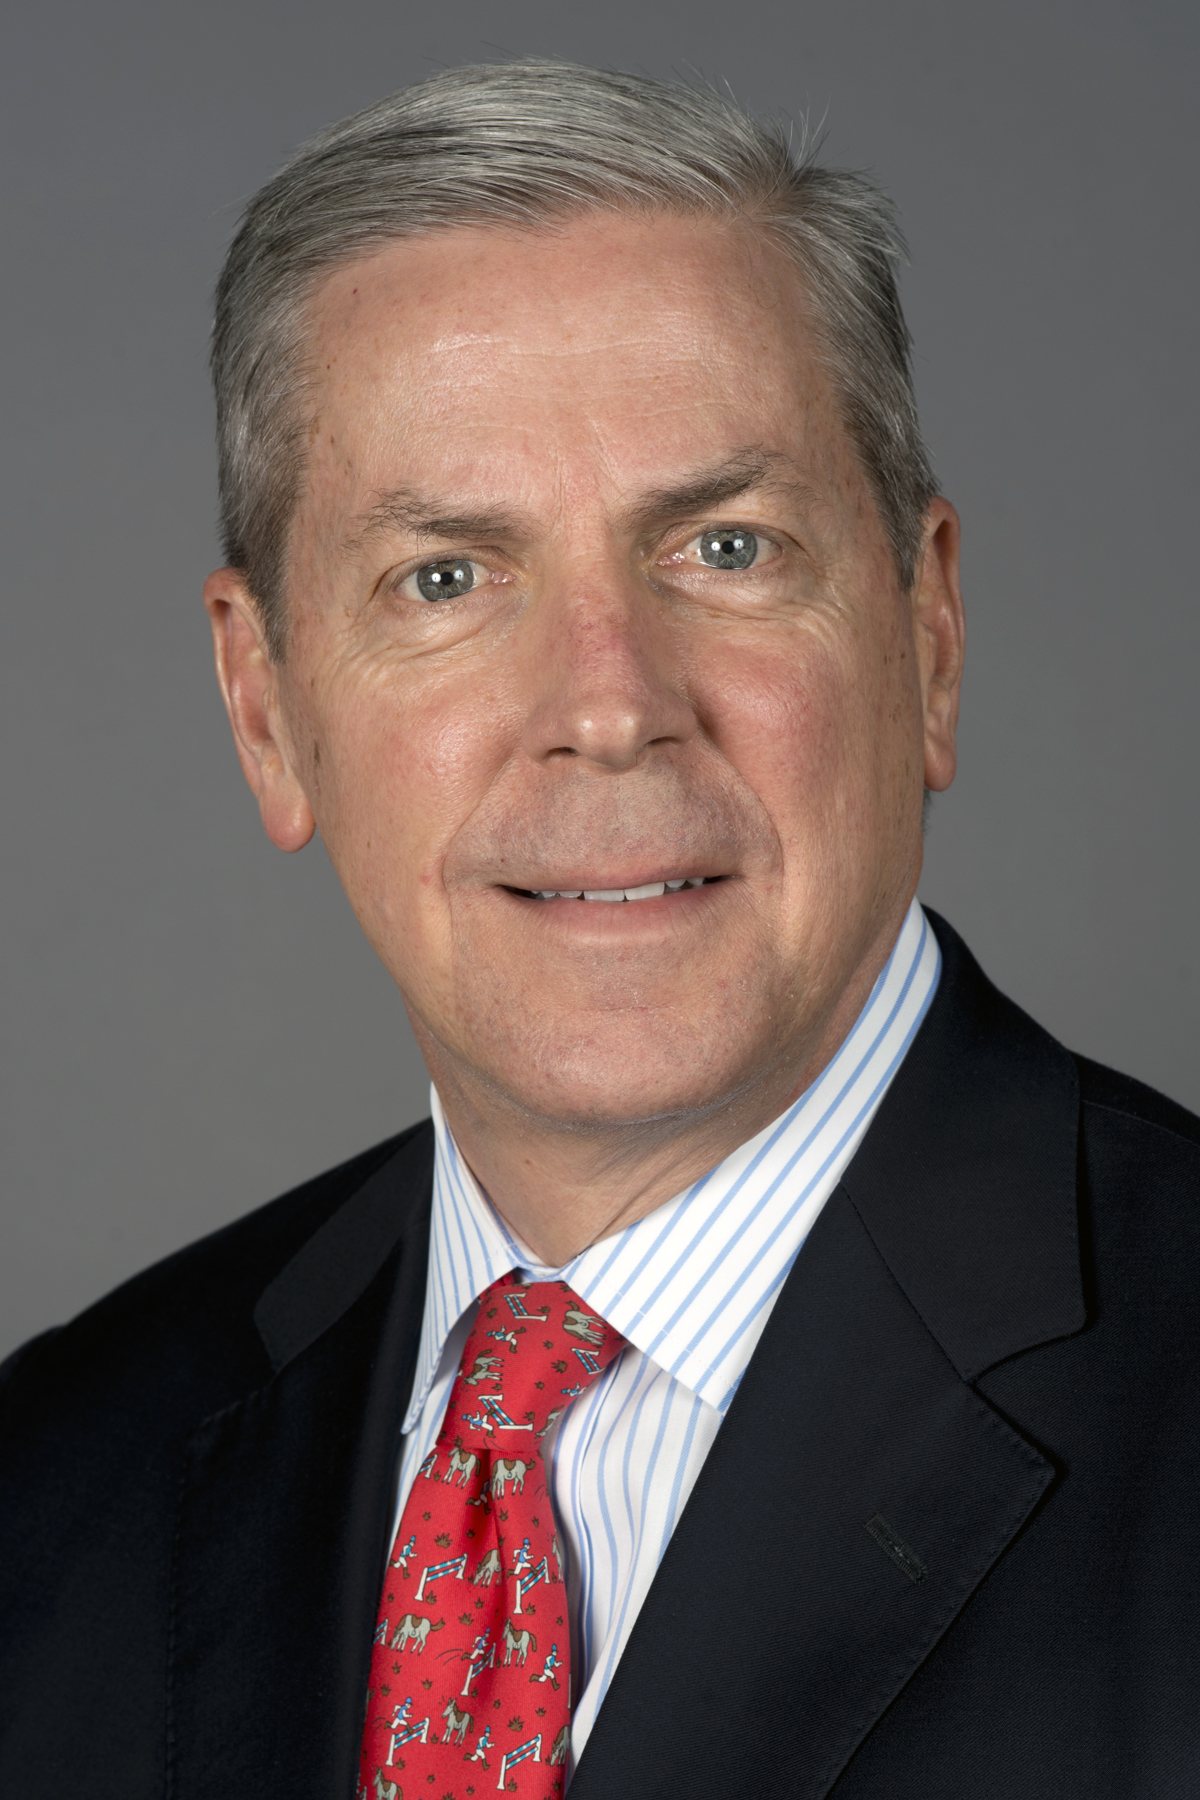 David M. Carroll, senior executive vice president of wealth & investment management at Wells Fargo